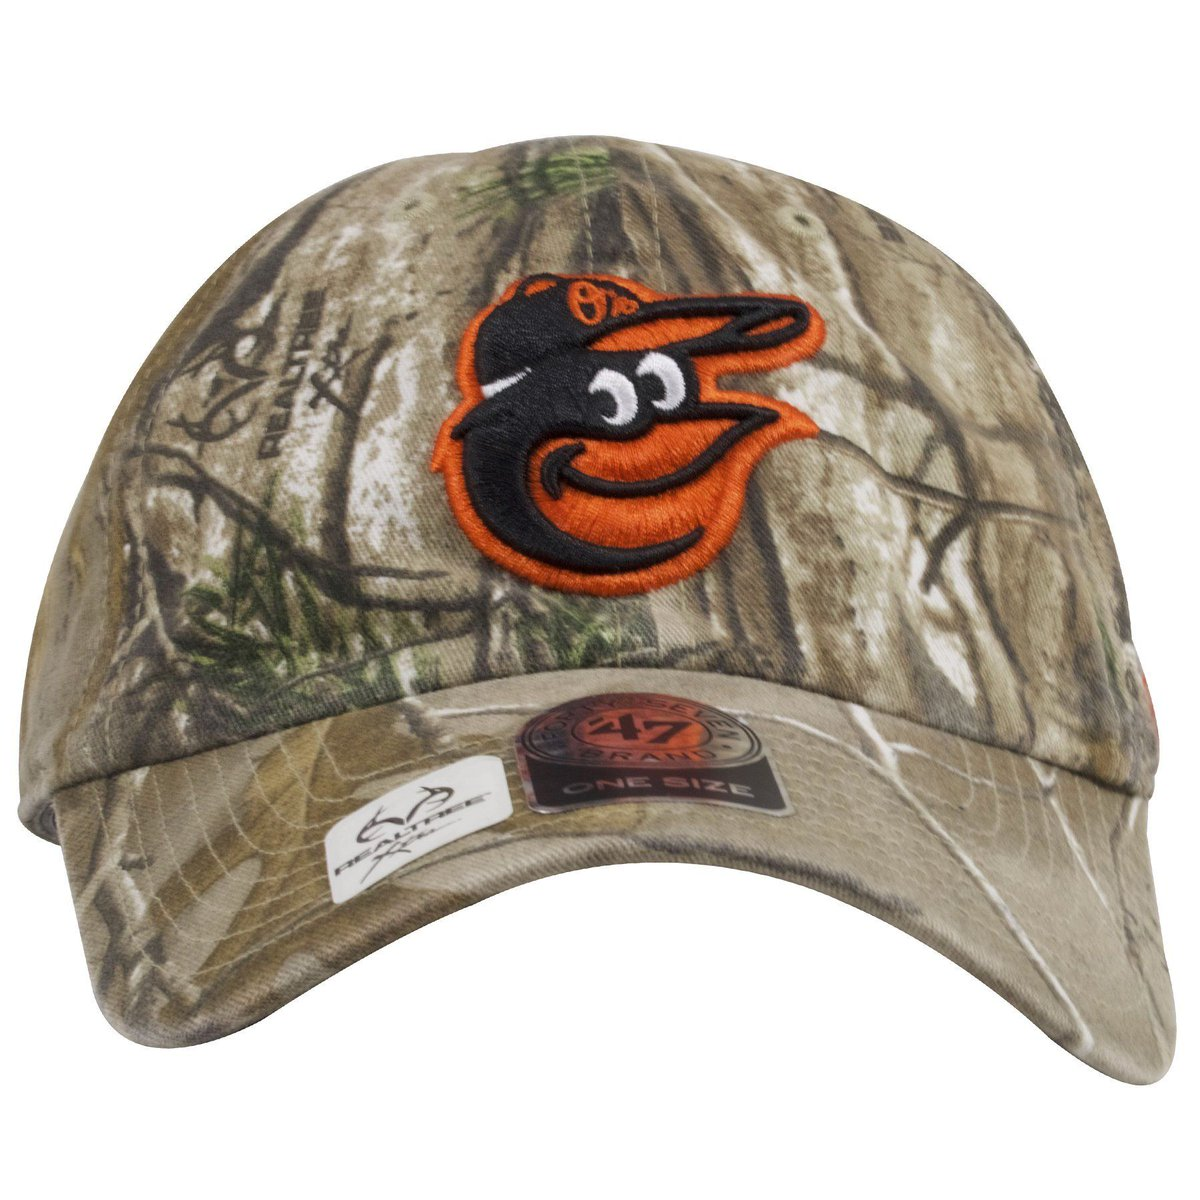 45b18162cf ... apparel on our online store to show your love for your favorite team  while going incognito! #baltimore #orioles #realtree #camo #camouflage # mossyoak ...